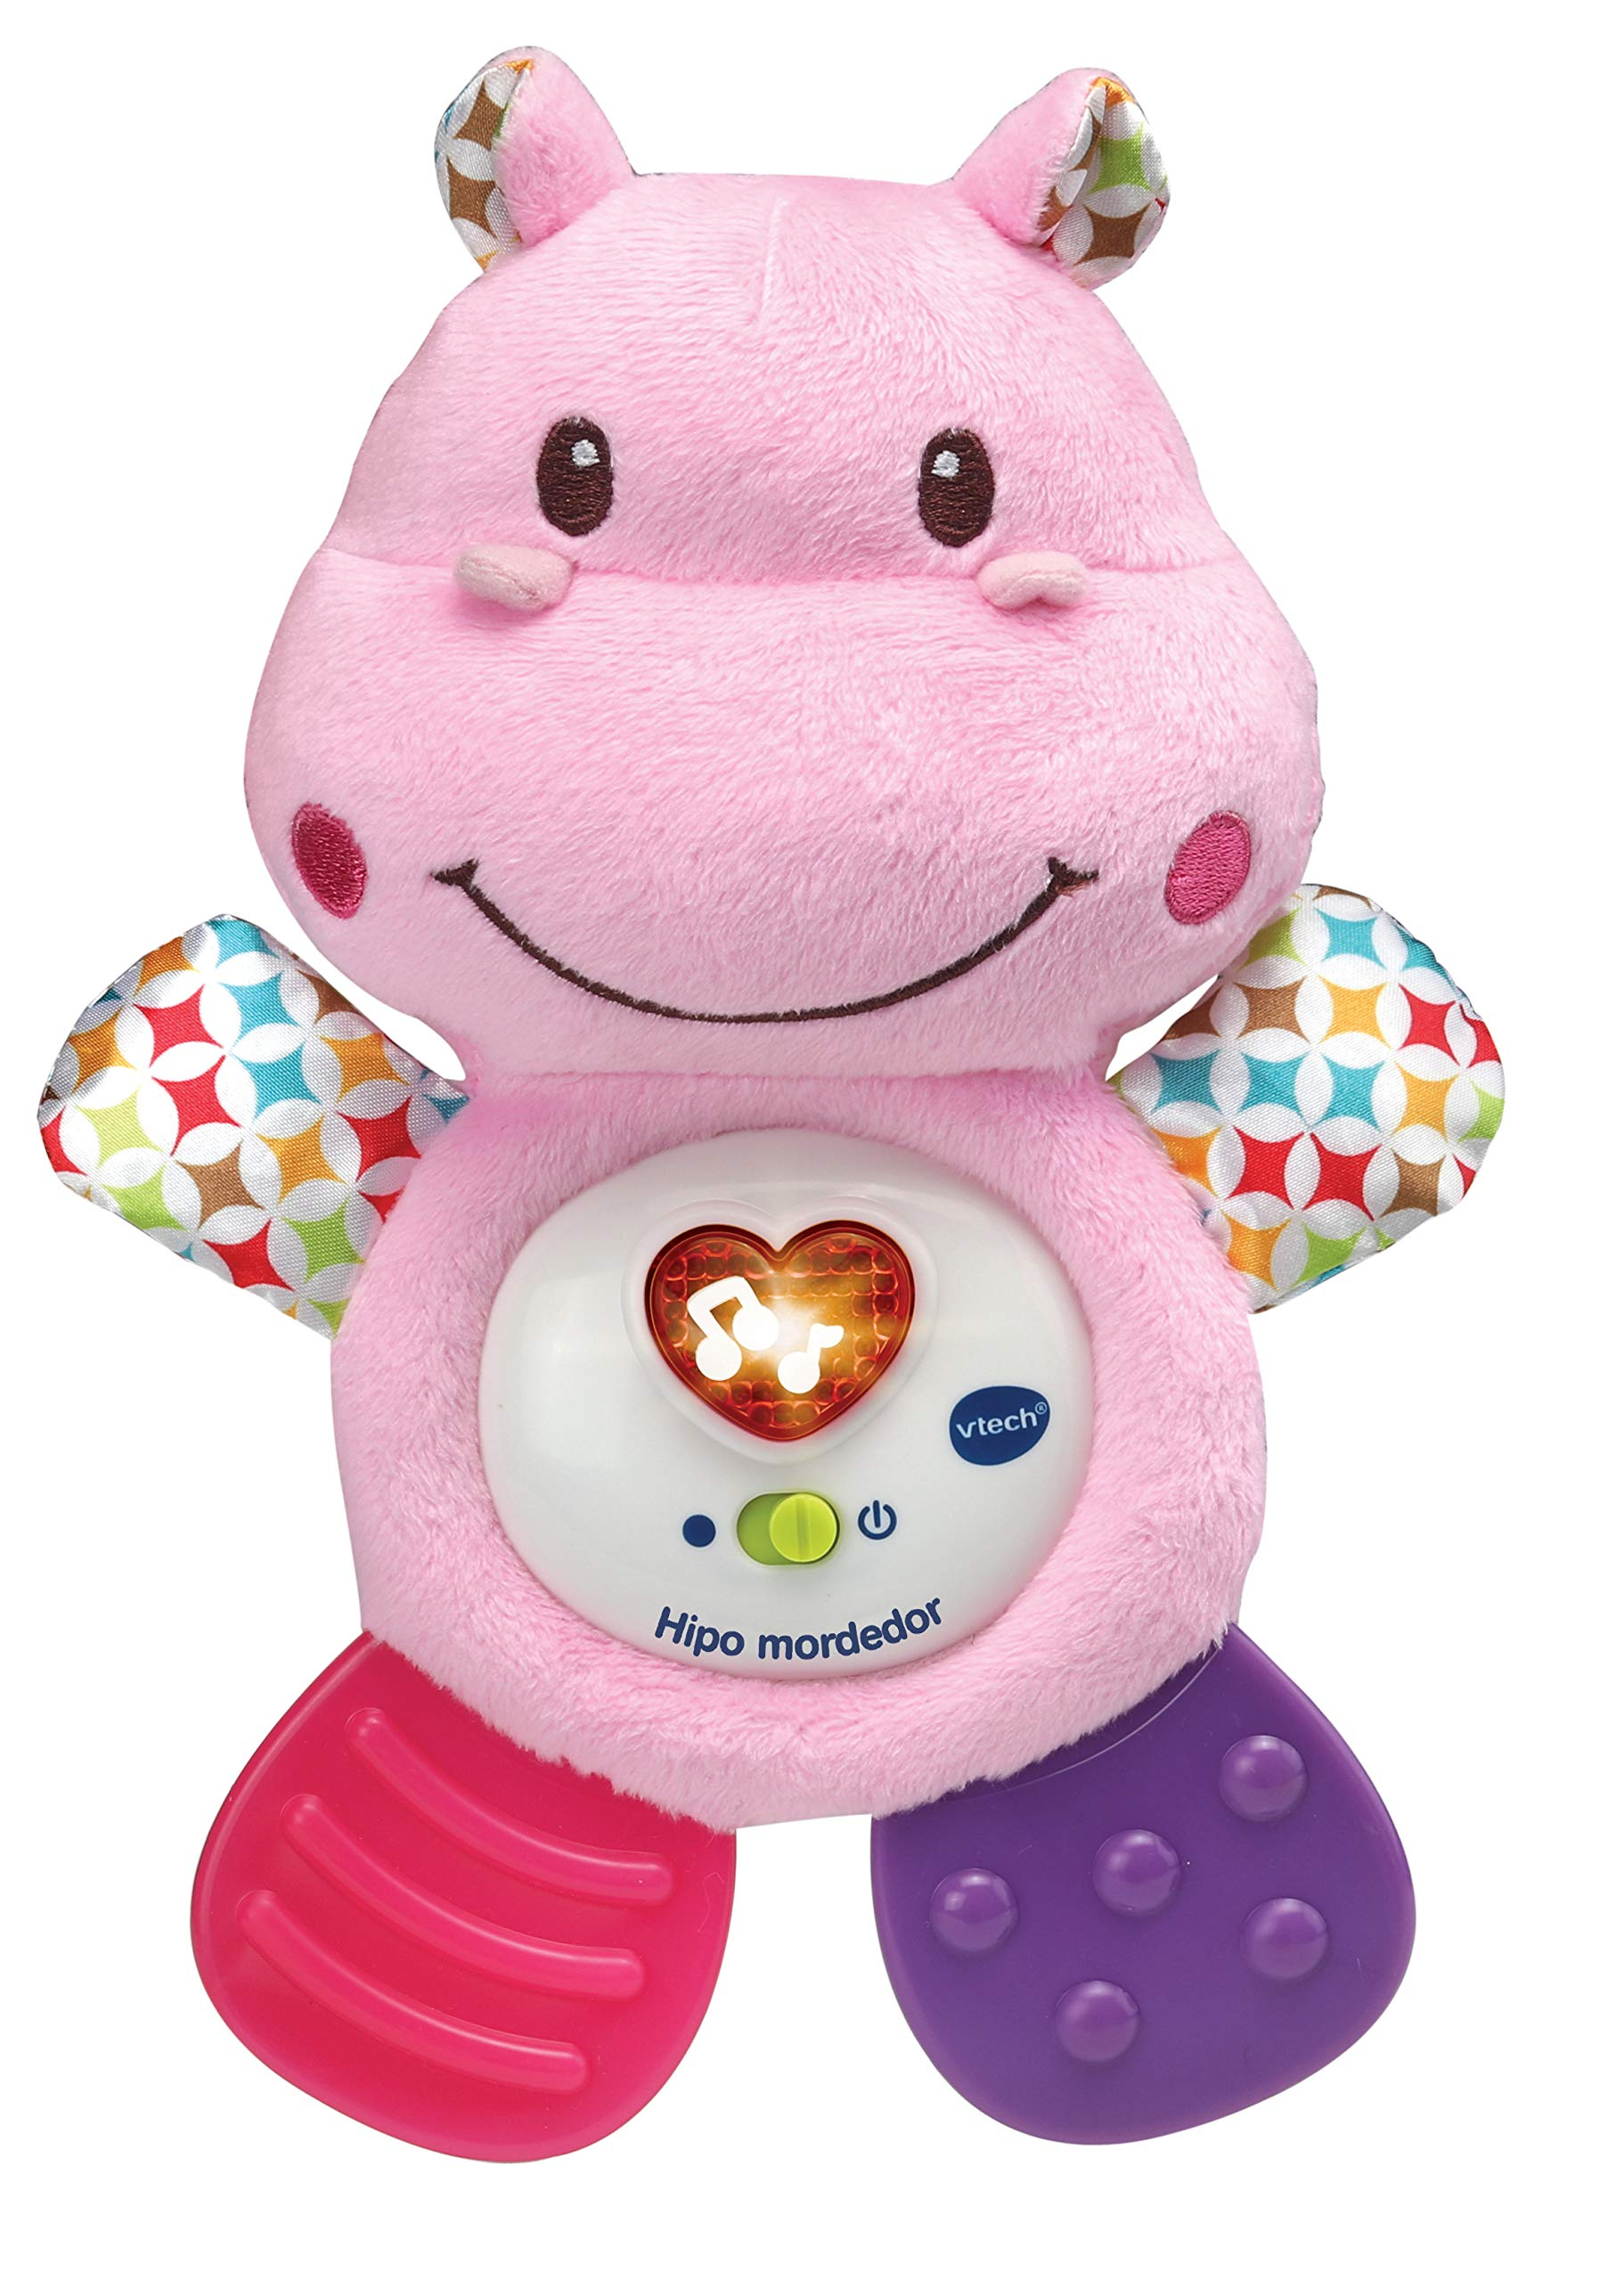 VTech HIPO Baby Crib Teether, Pink (3480-502557)